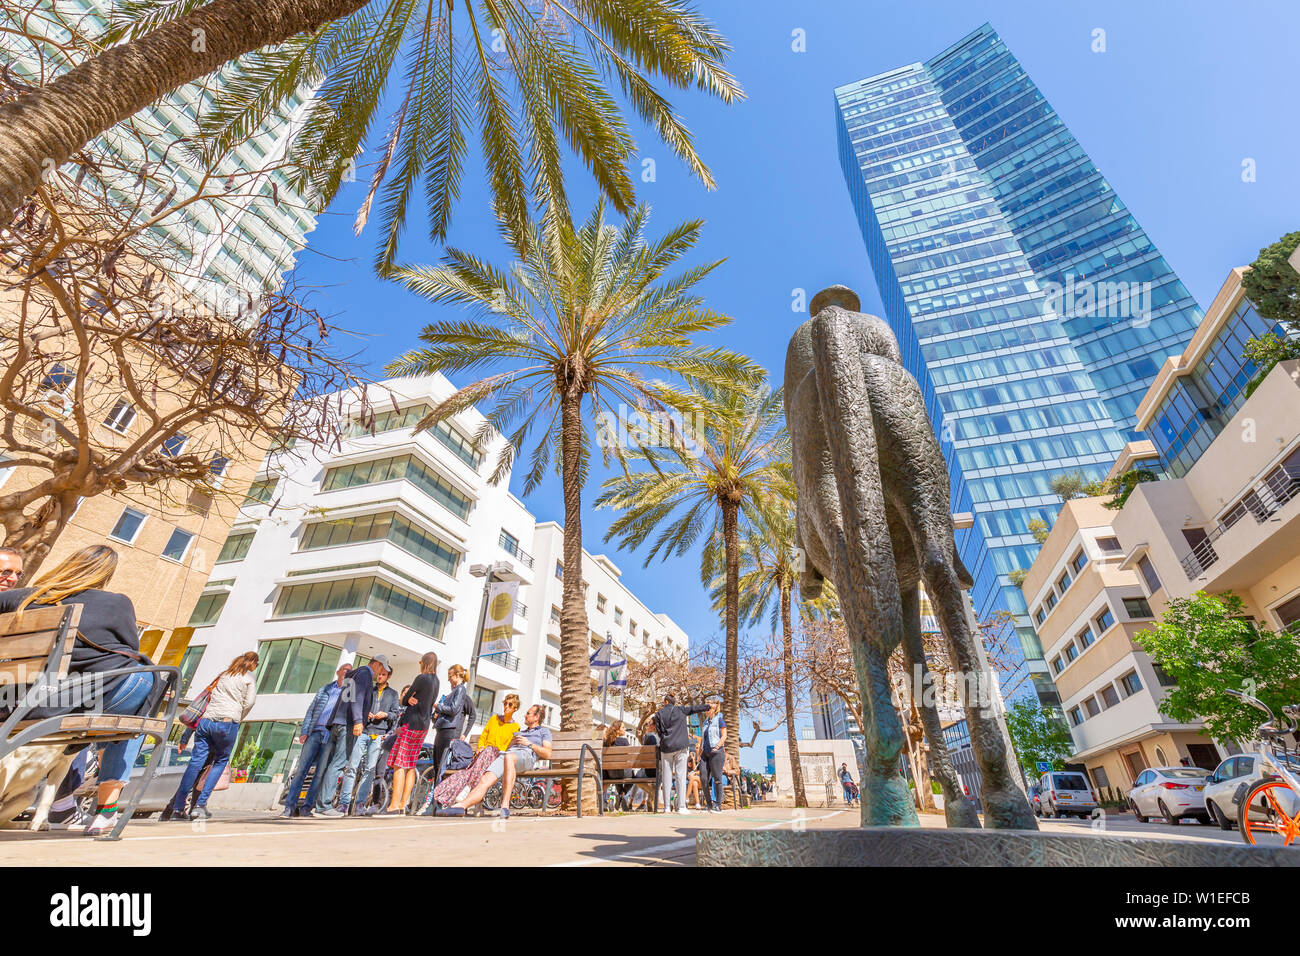 View of statue, palm trees and walkway on Rothschild Boulevard, Tel Aviv, Israel, Middle East - Stock Image